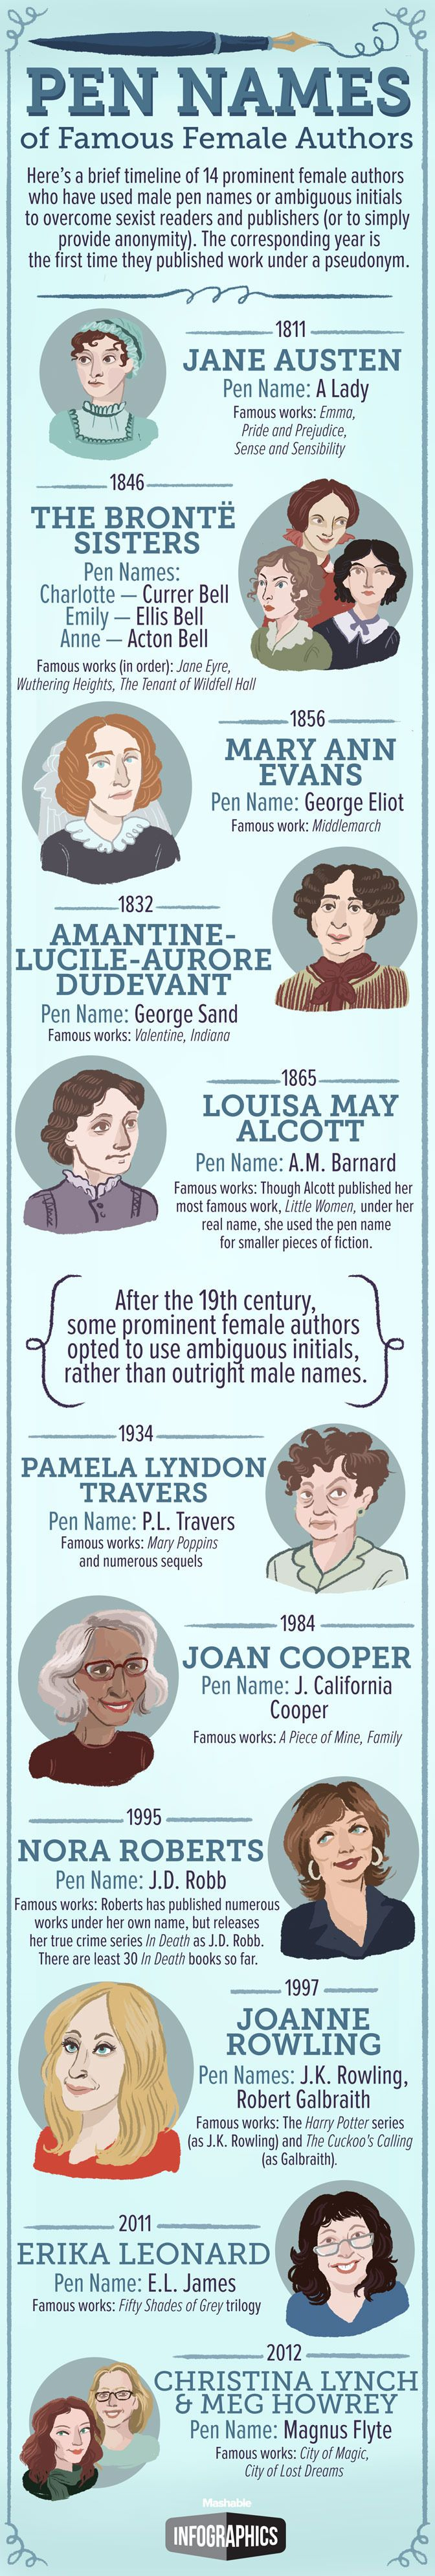 "Female authors have had to use pen names for hundreds of years -- but why? To be taken ""seriously."""